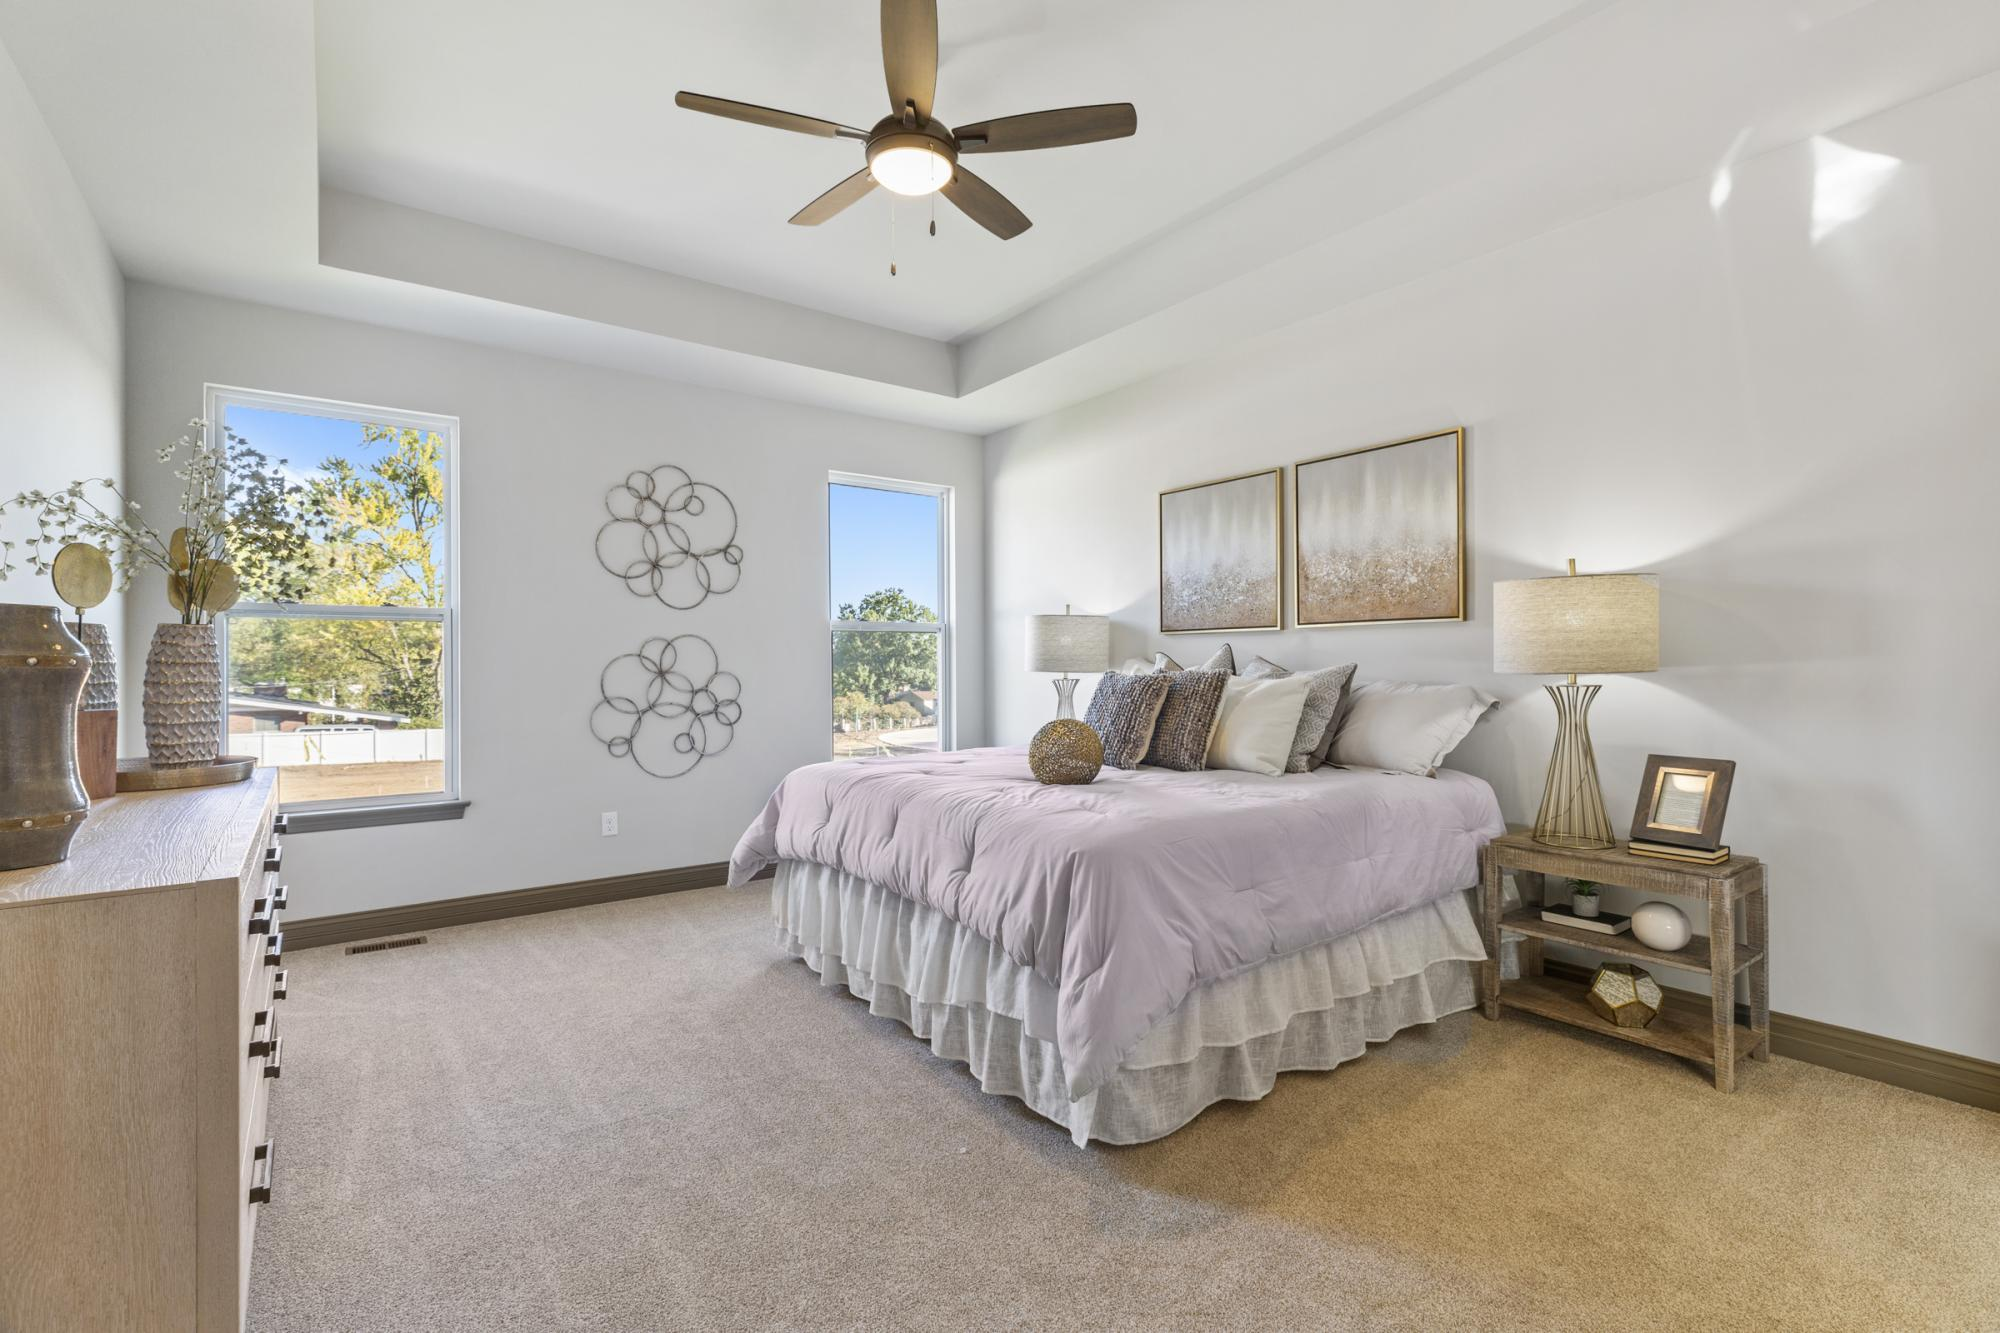 Bedroom featured in the Madison By McKelvey Homes in St. Louis, MO